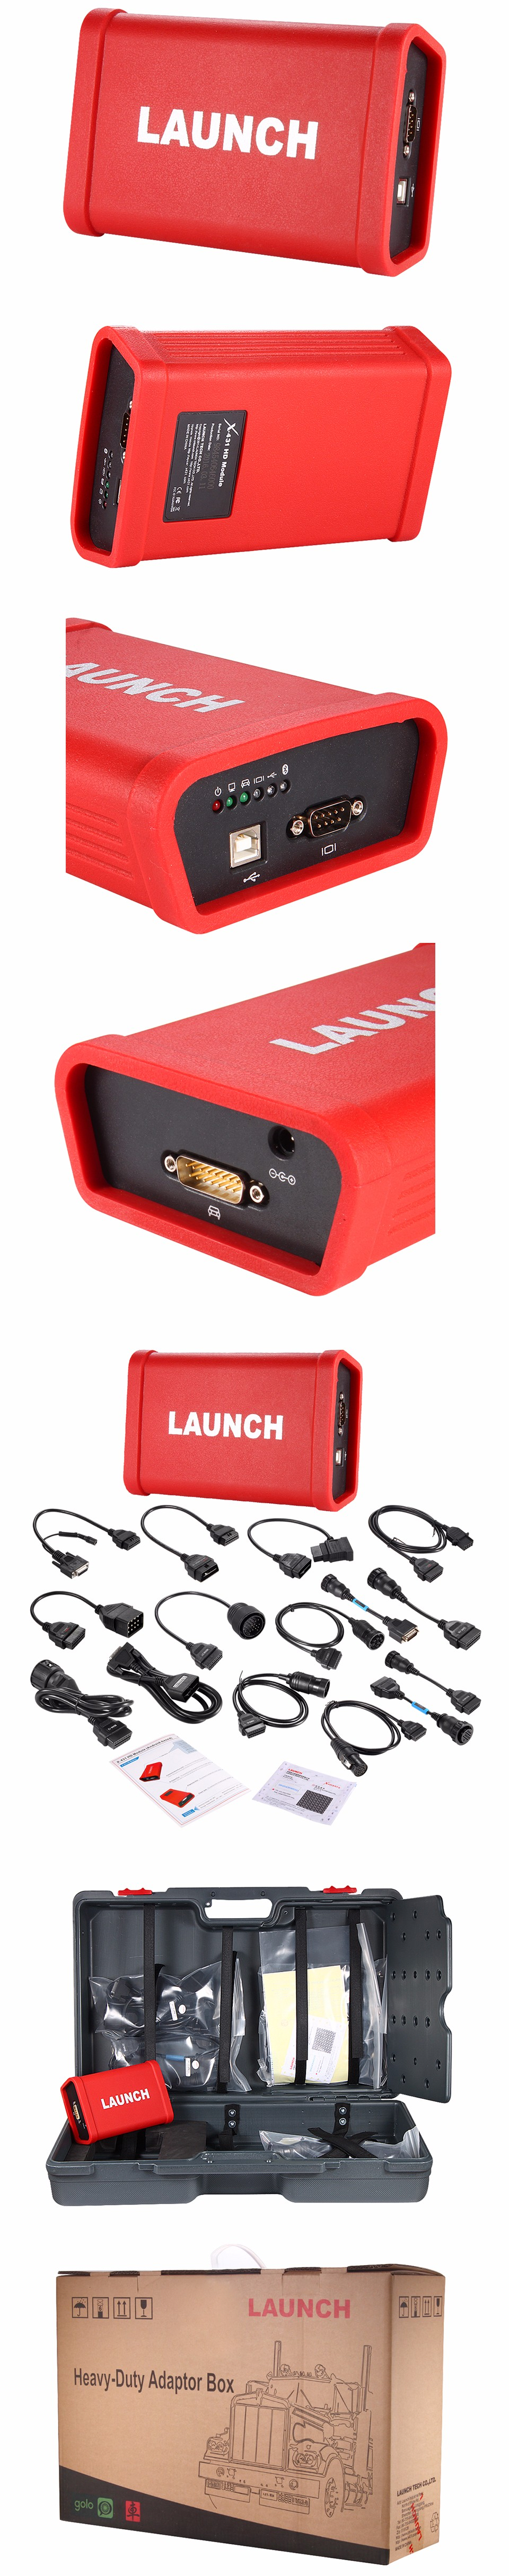 Launch-x431-heavy-duty-adapter-box-1